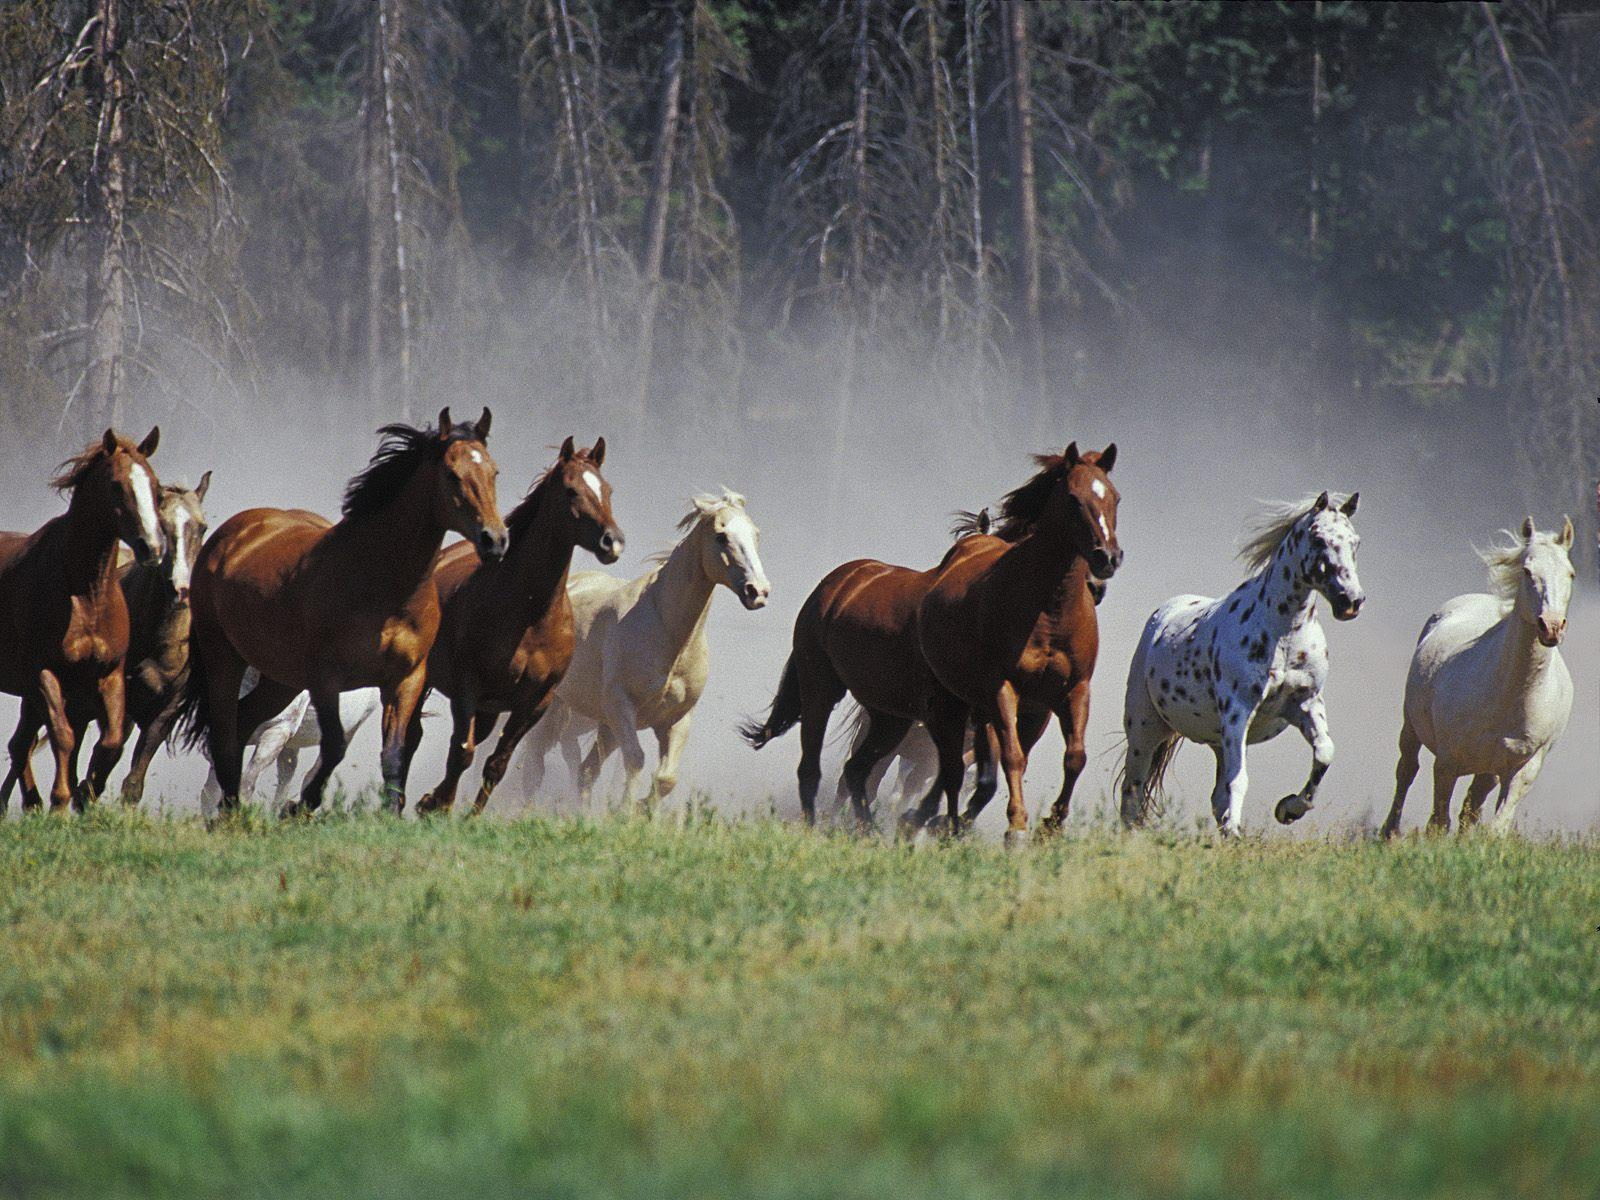 wild horses free desktop background free wallpaper image